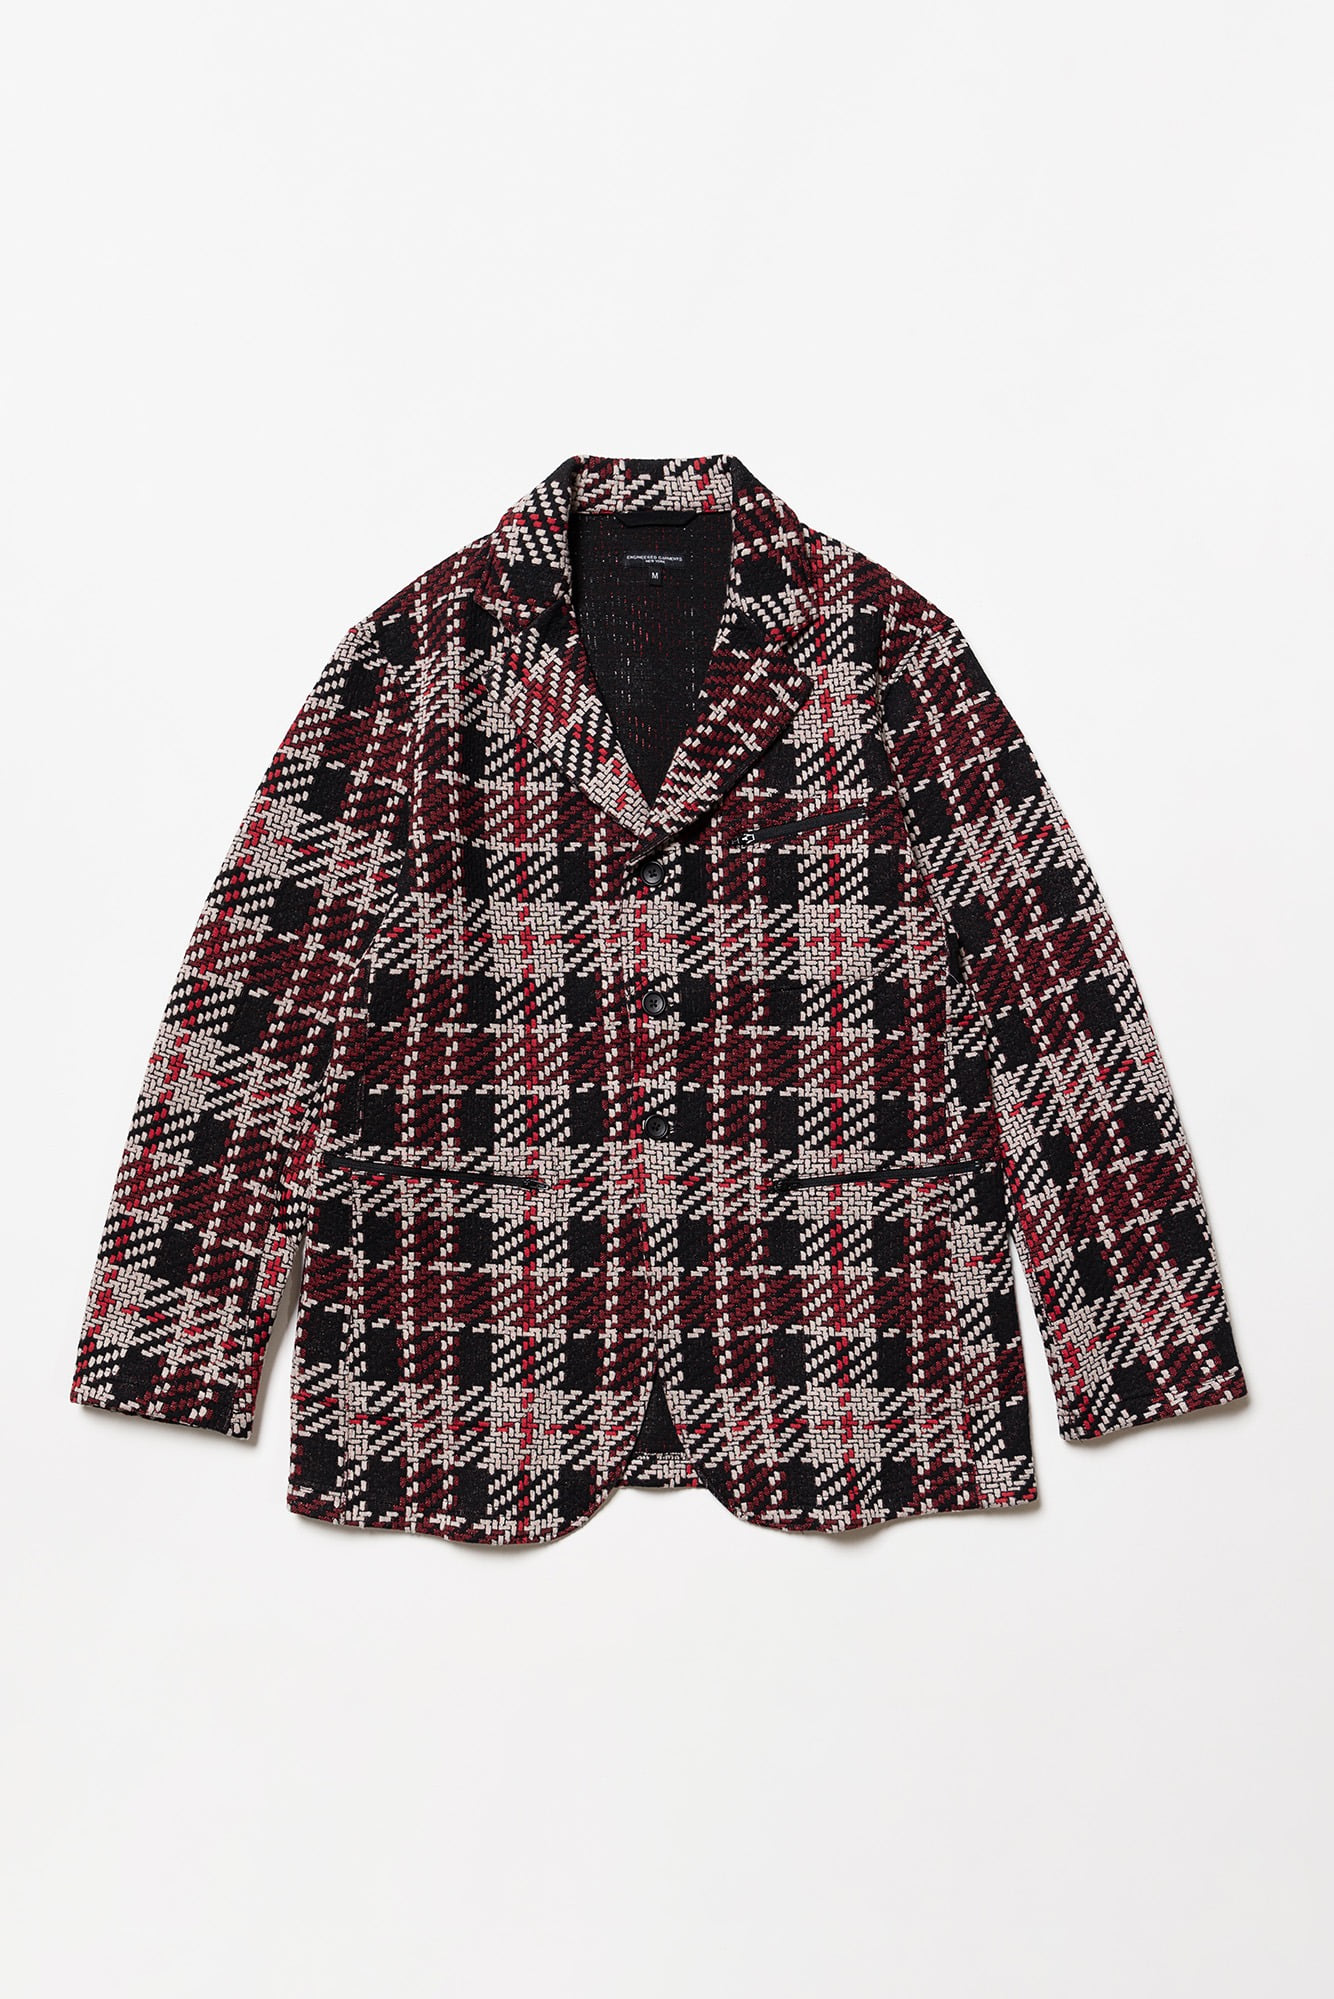 "ENGINEERED GARMENTS Leisure Jacket ""Black/Red Tweed Knit"""